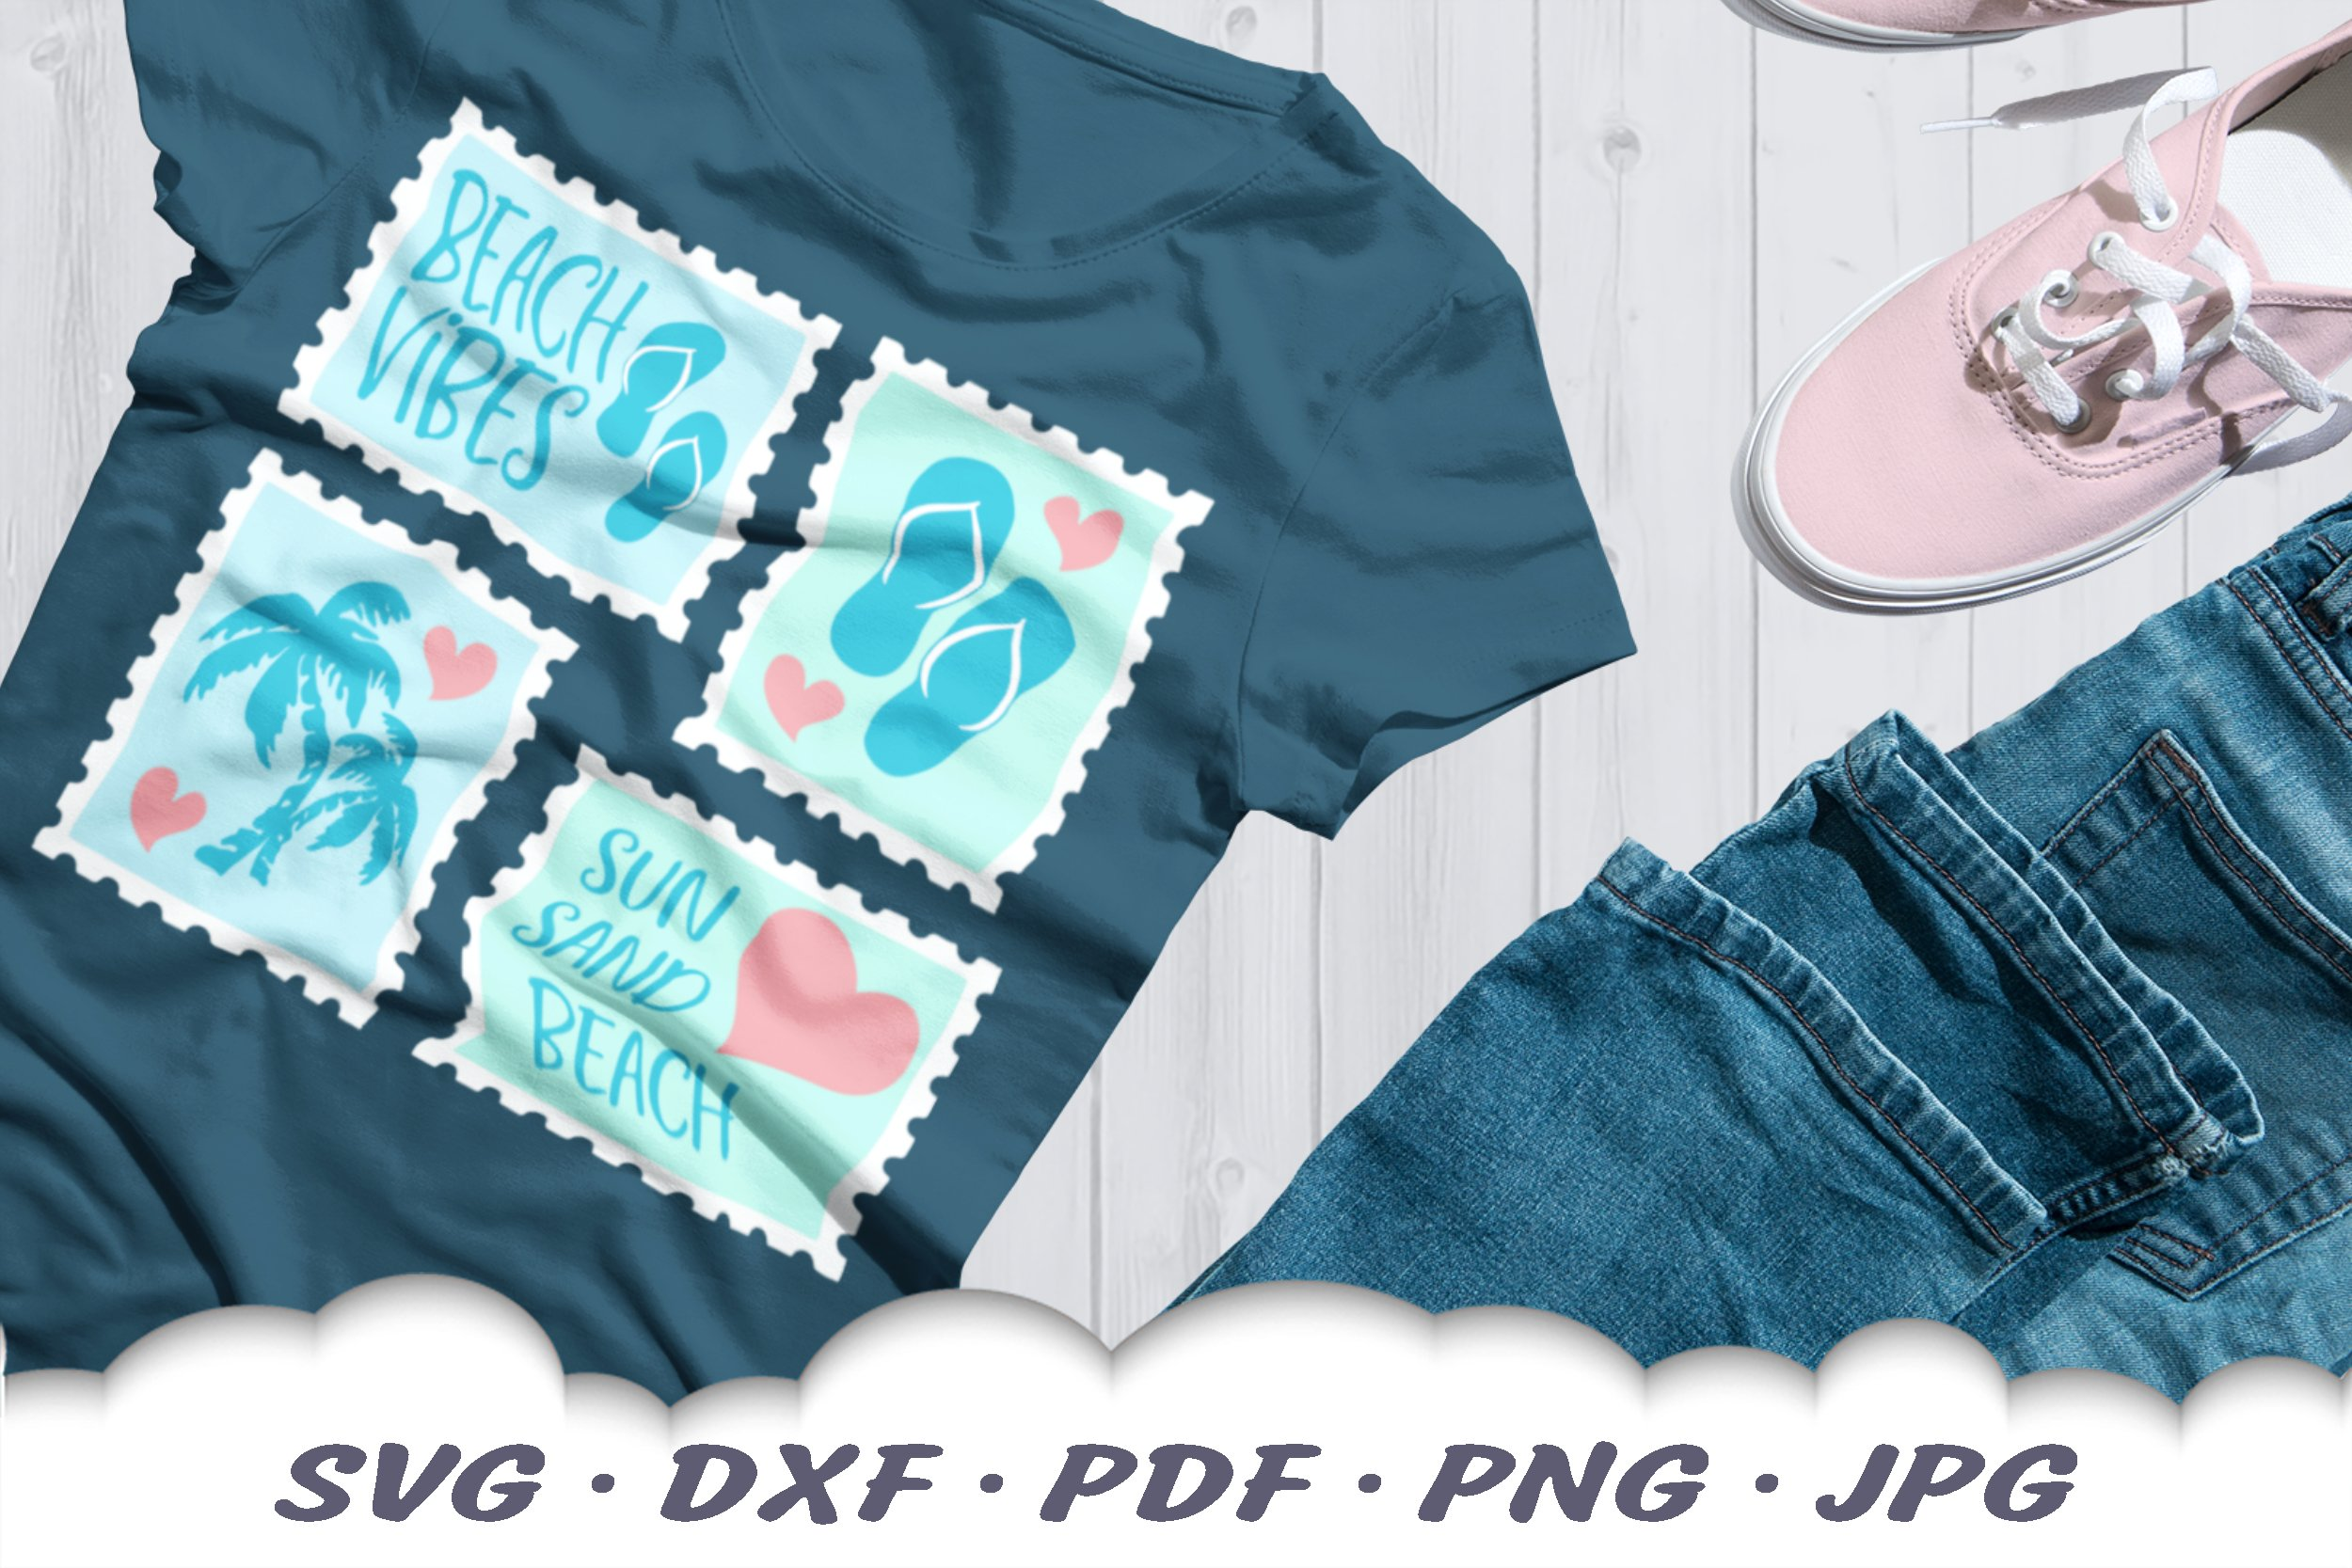 Beach Vibes Stamps SVG Bundle | Beach DXF Cut Files example image 4